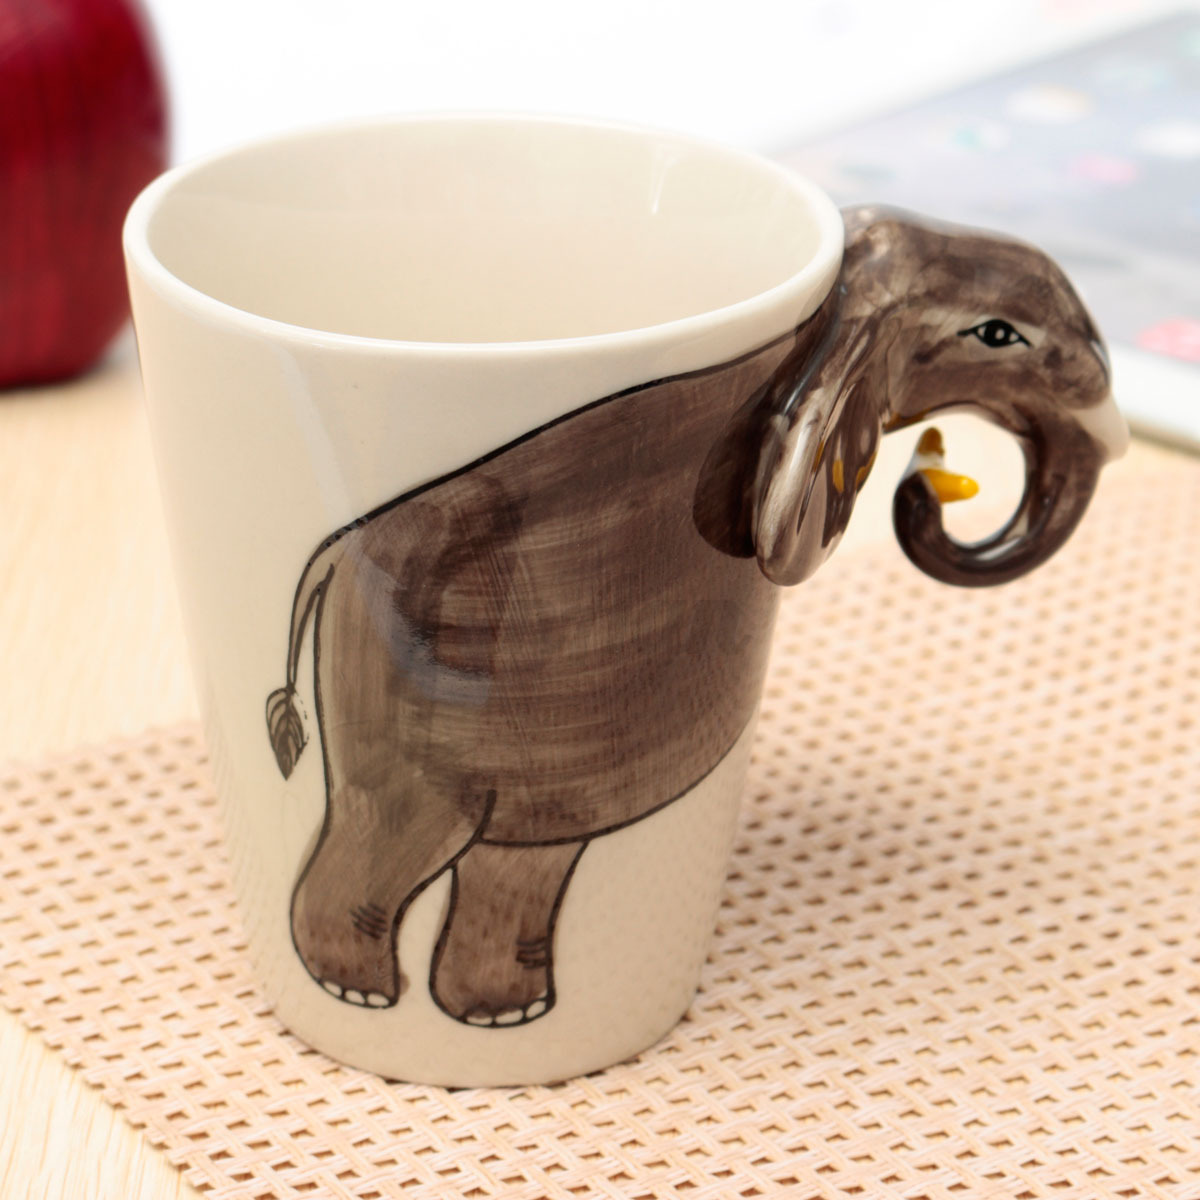 Animal Coffee Mug Cute 3d Hand Painted Animal Design Ceramic Tea Coffee